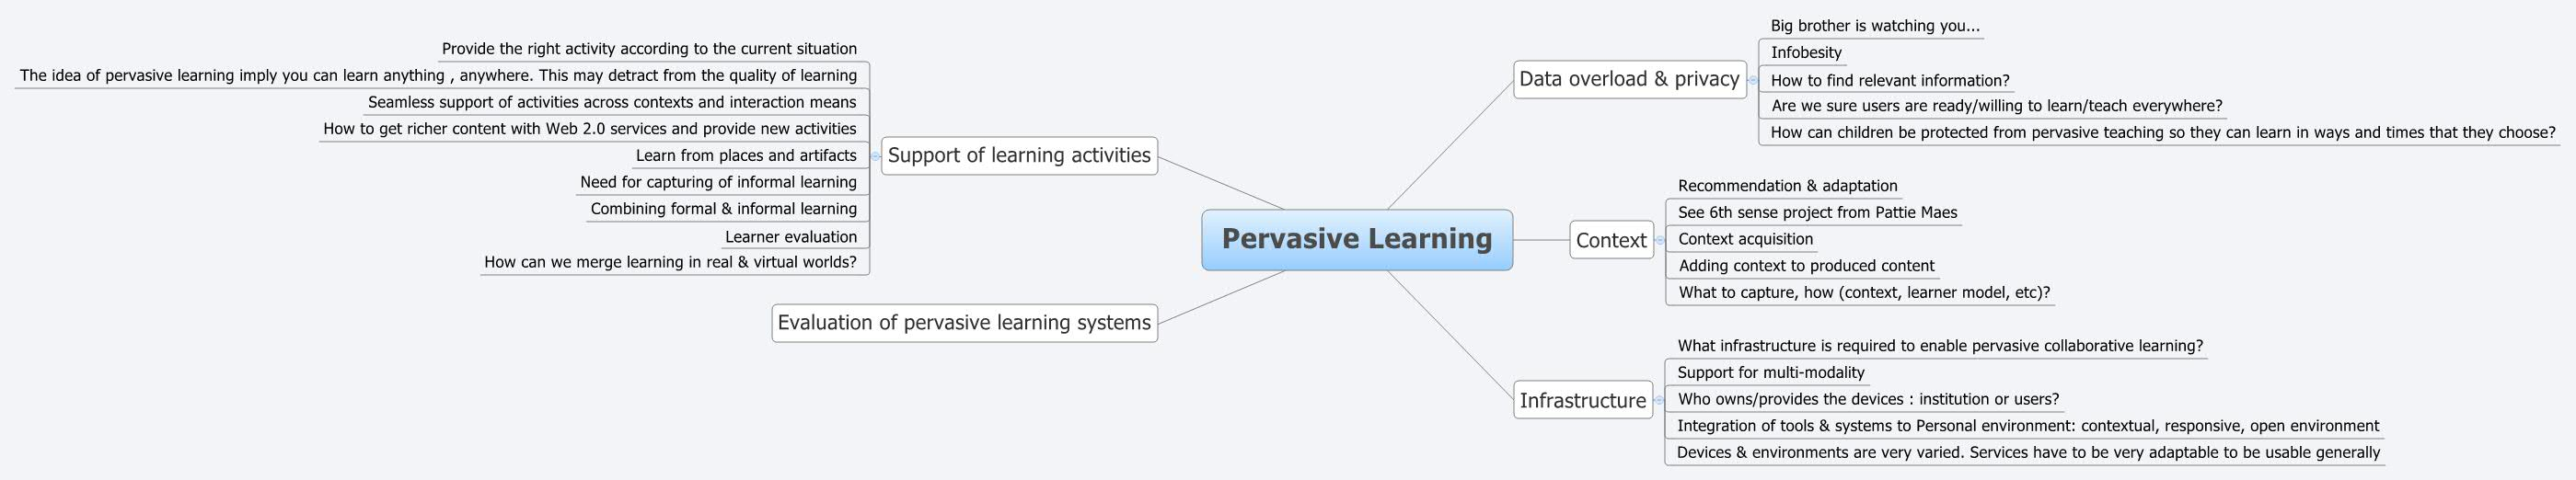 pervasive learning mind map